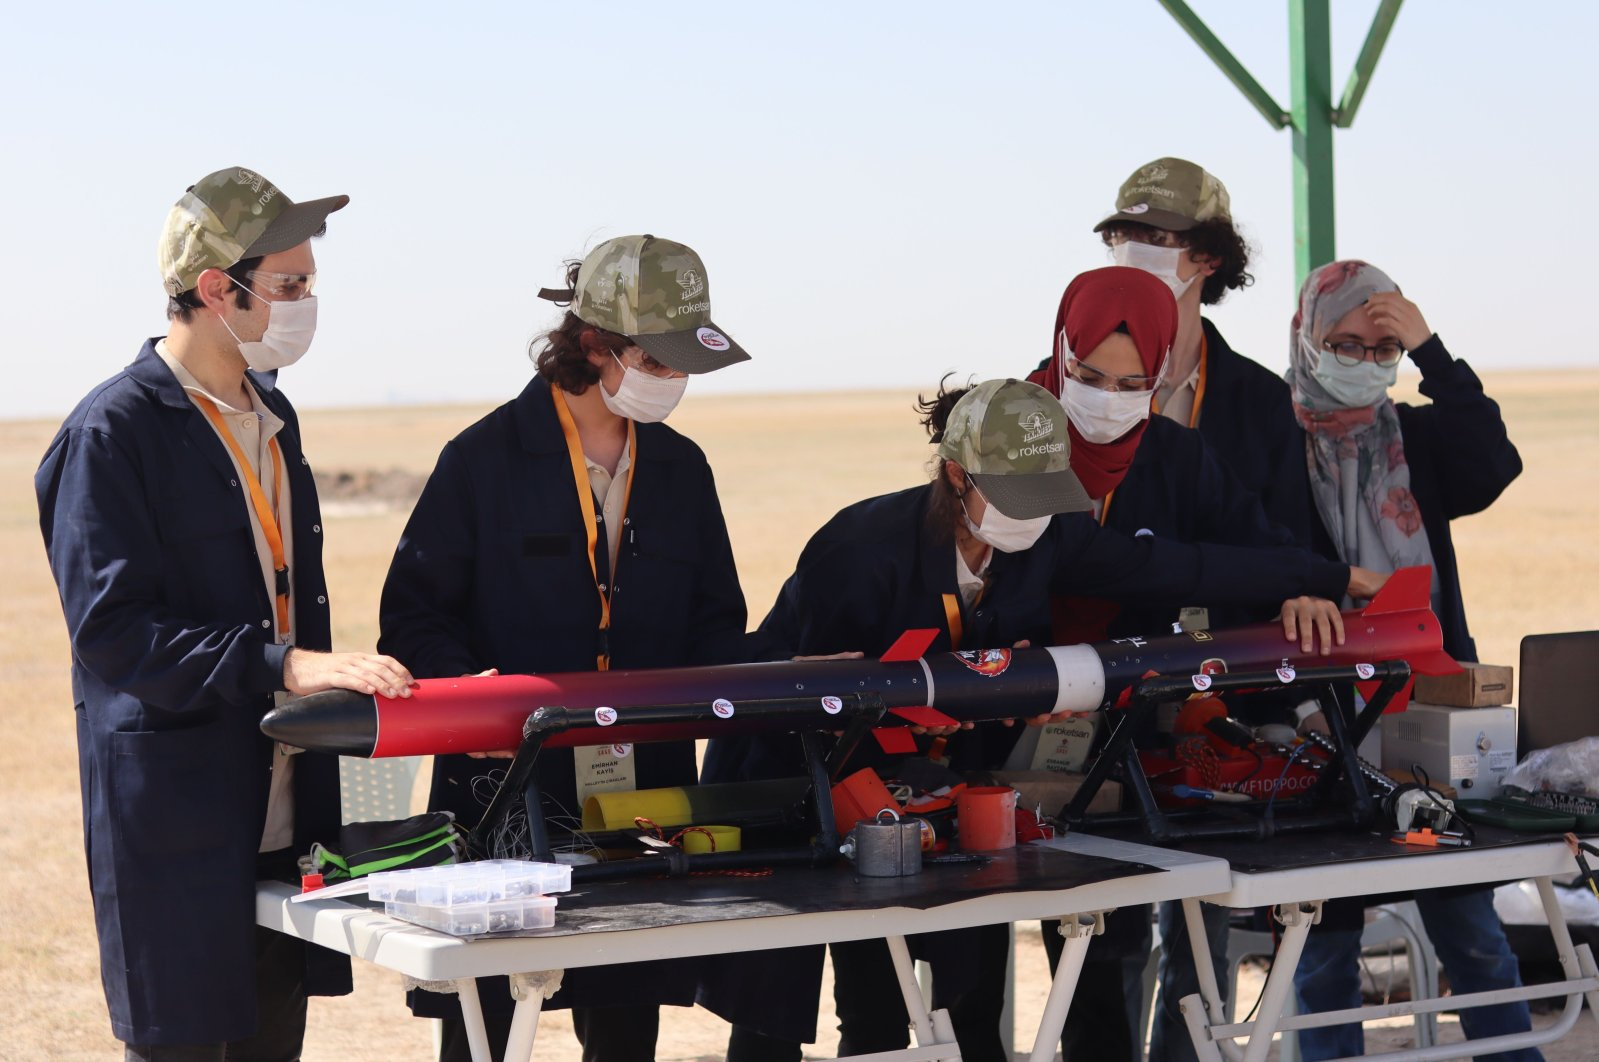 """Sixteen-year-old Emirhan Kayiş (2nd from L) works with his team """"Halley's Apprentices"""" during the Teknofest Rocket Competition in Turkey's central Aksaray province, Sept. 4, 2020. (Daily Sabah Photo)"""